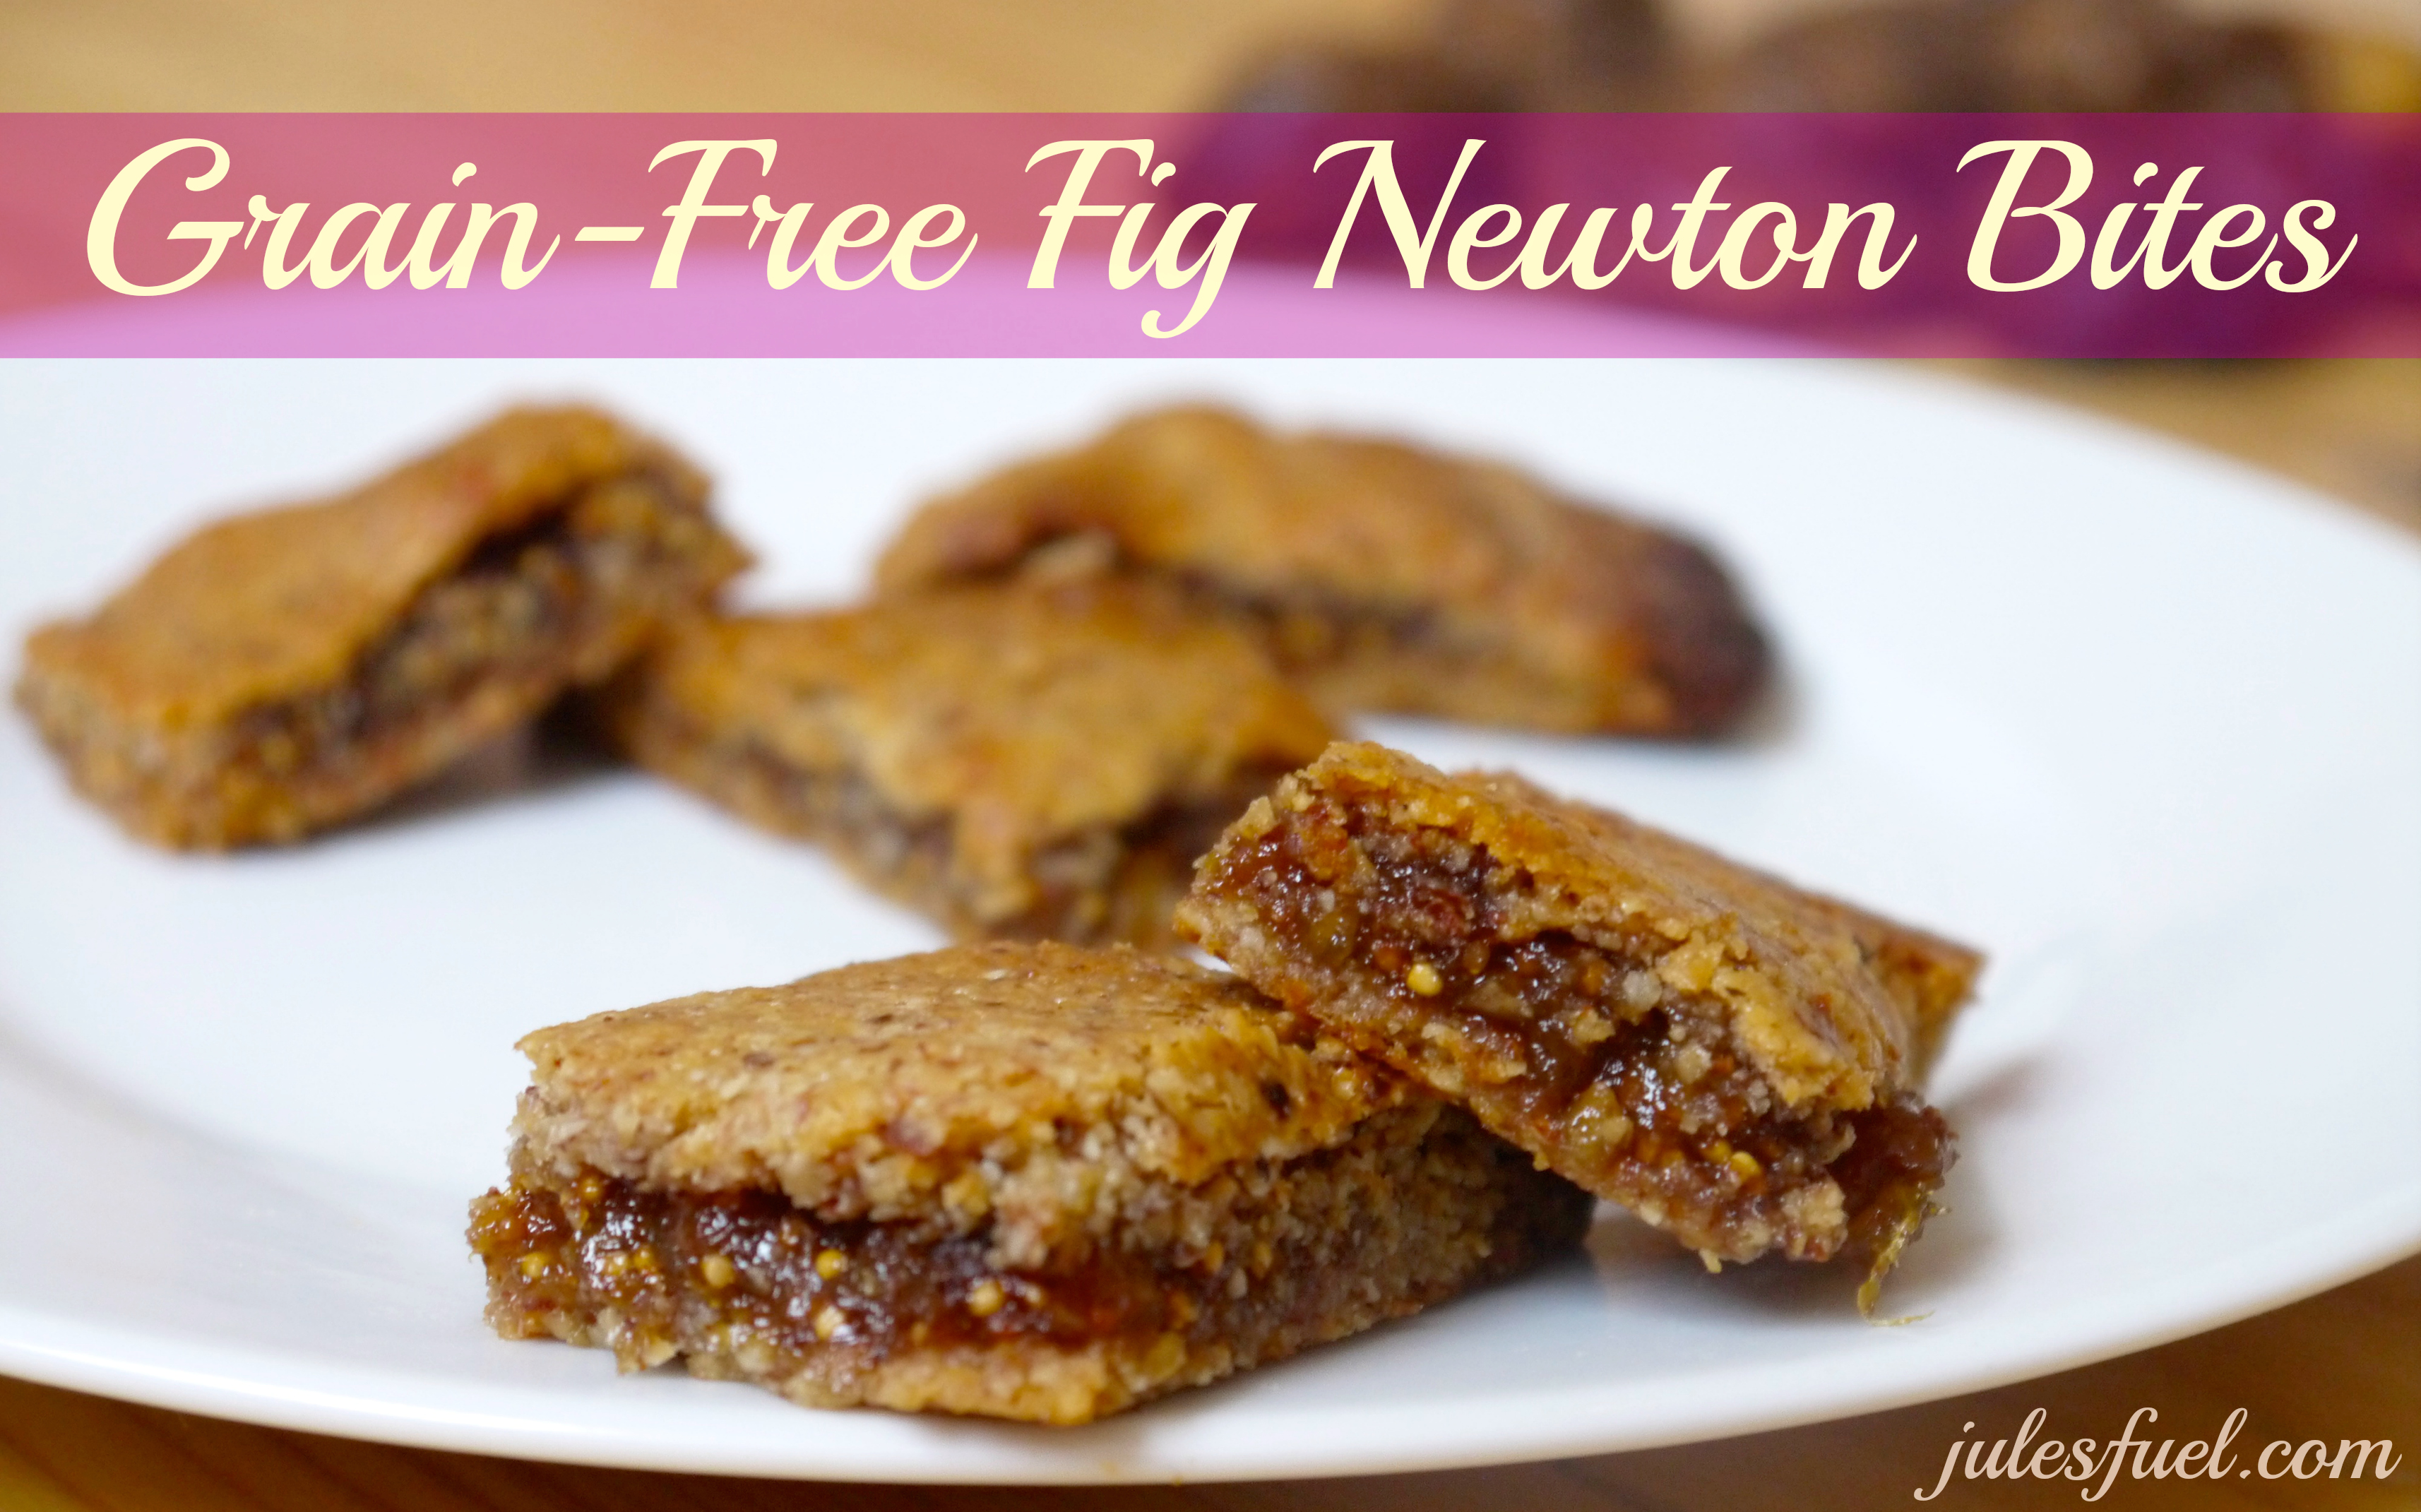 GF Fig Newton Bites